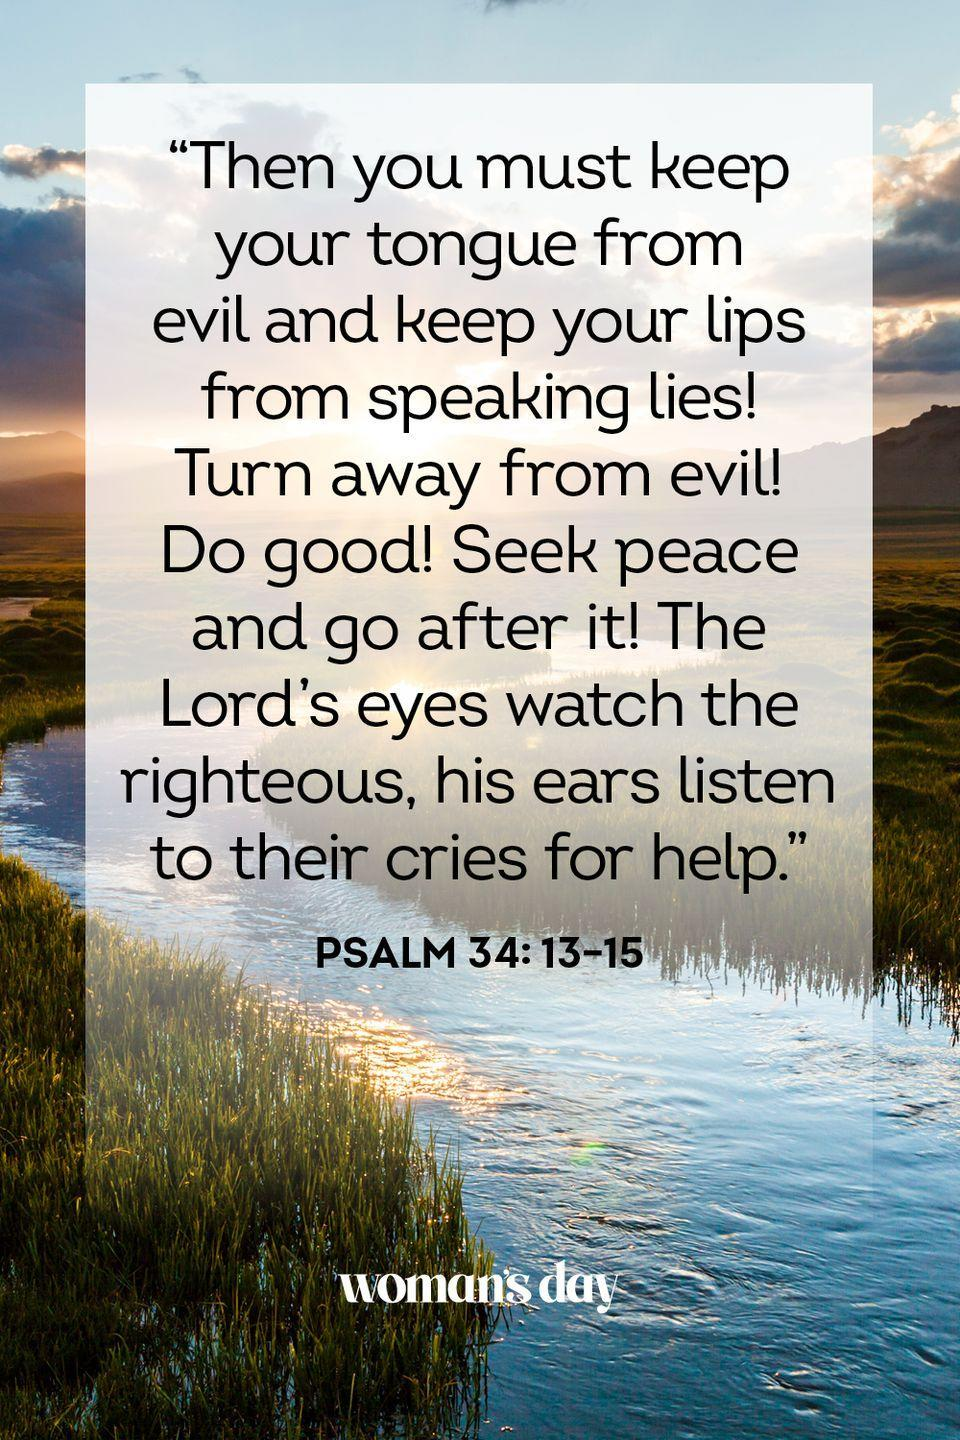 """<p>""""Then you must keep your tongue from evil and keep your lips from speaking lies! Turn away from evil! Do good! Seek peace and go after it! The Lord's eyes watch the righteous, his ears listen to their cries for help."""" — Psalm 34: 13–15</p><p><strong>The Good News: </strong>If you make a genuine effort to strive for peace in all your interactions — with enemies as well as friends — the Lord will hear your prayers in times of need.</p>"""